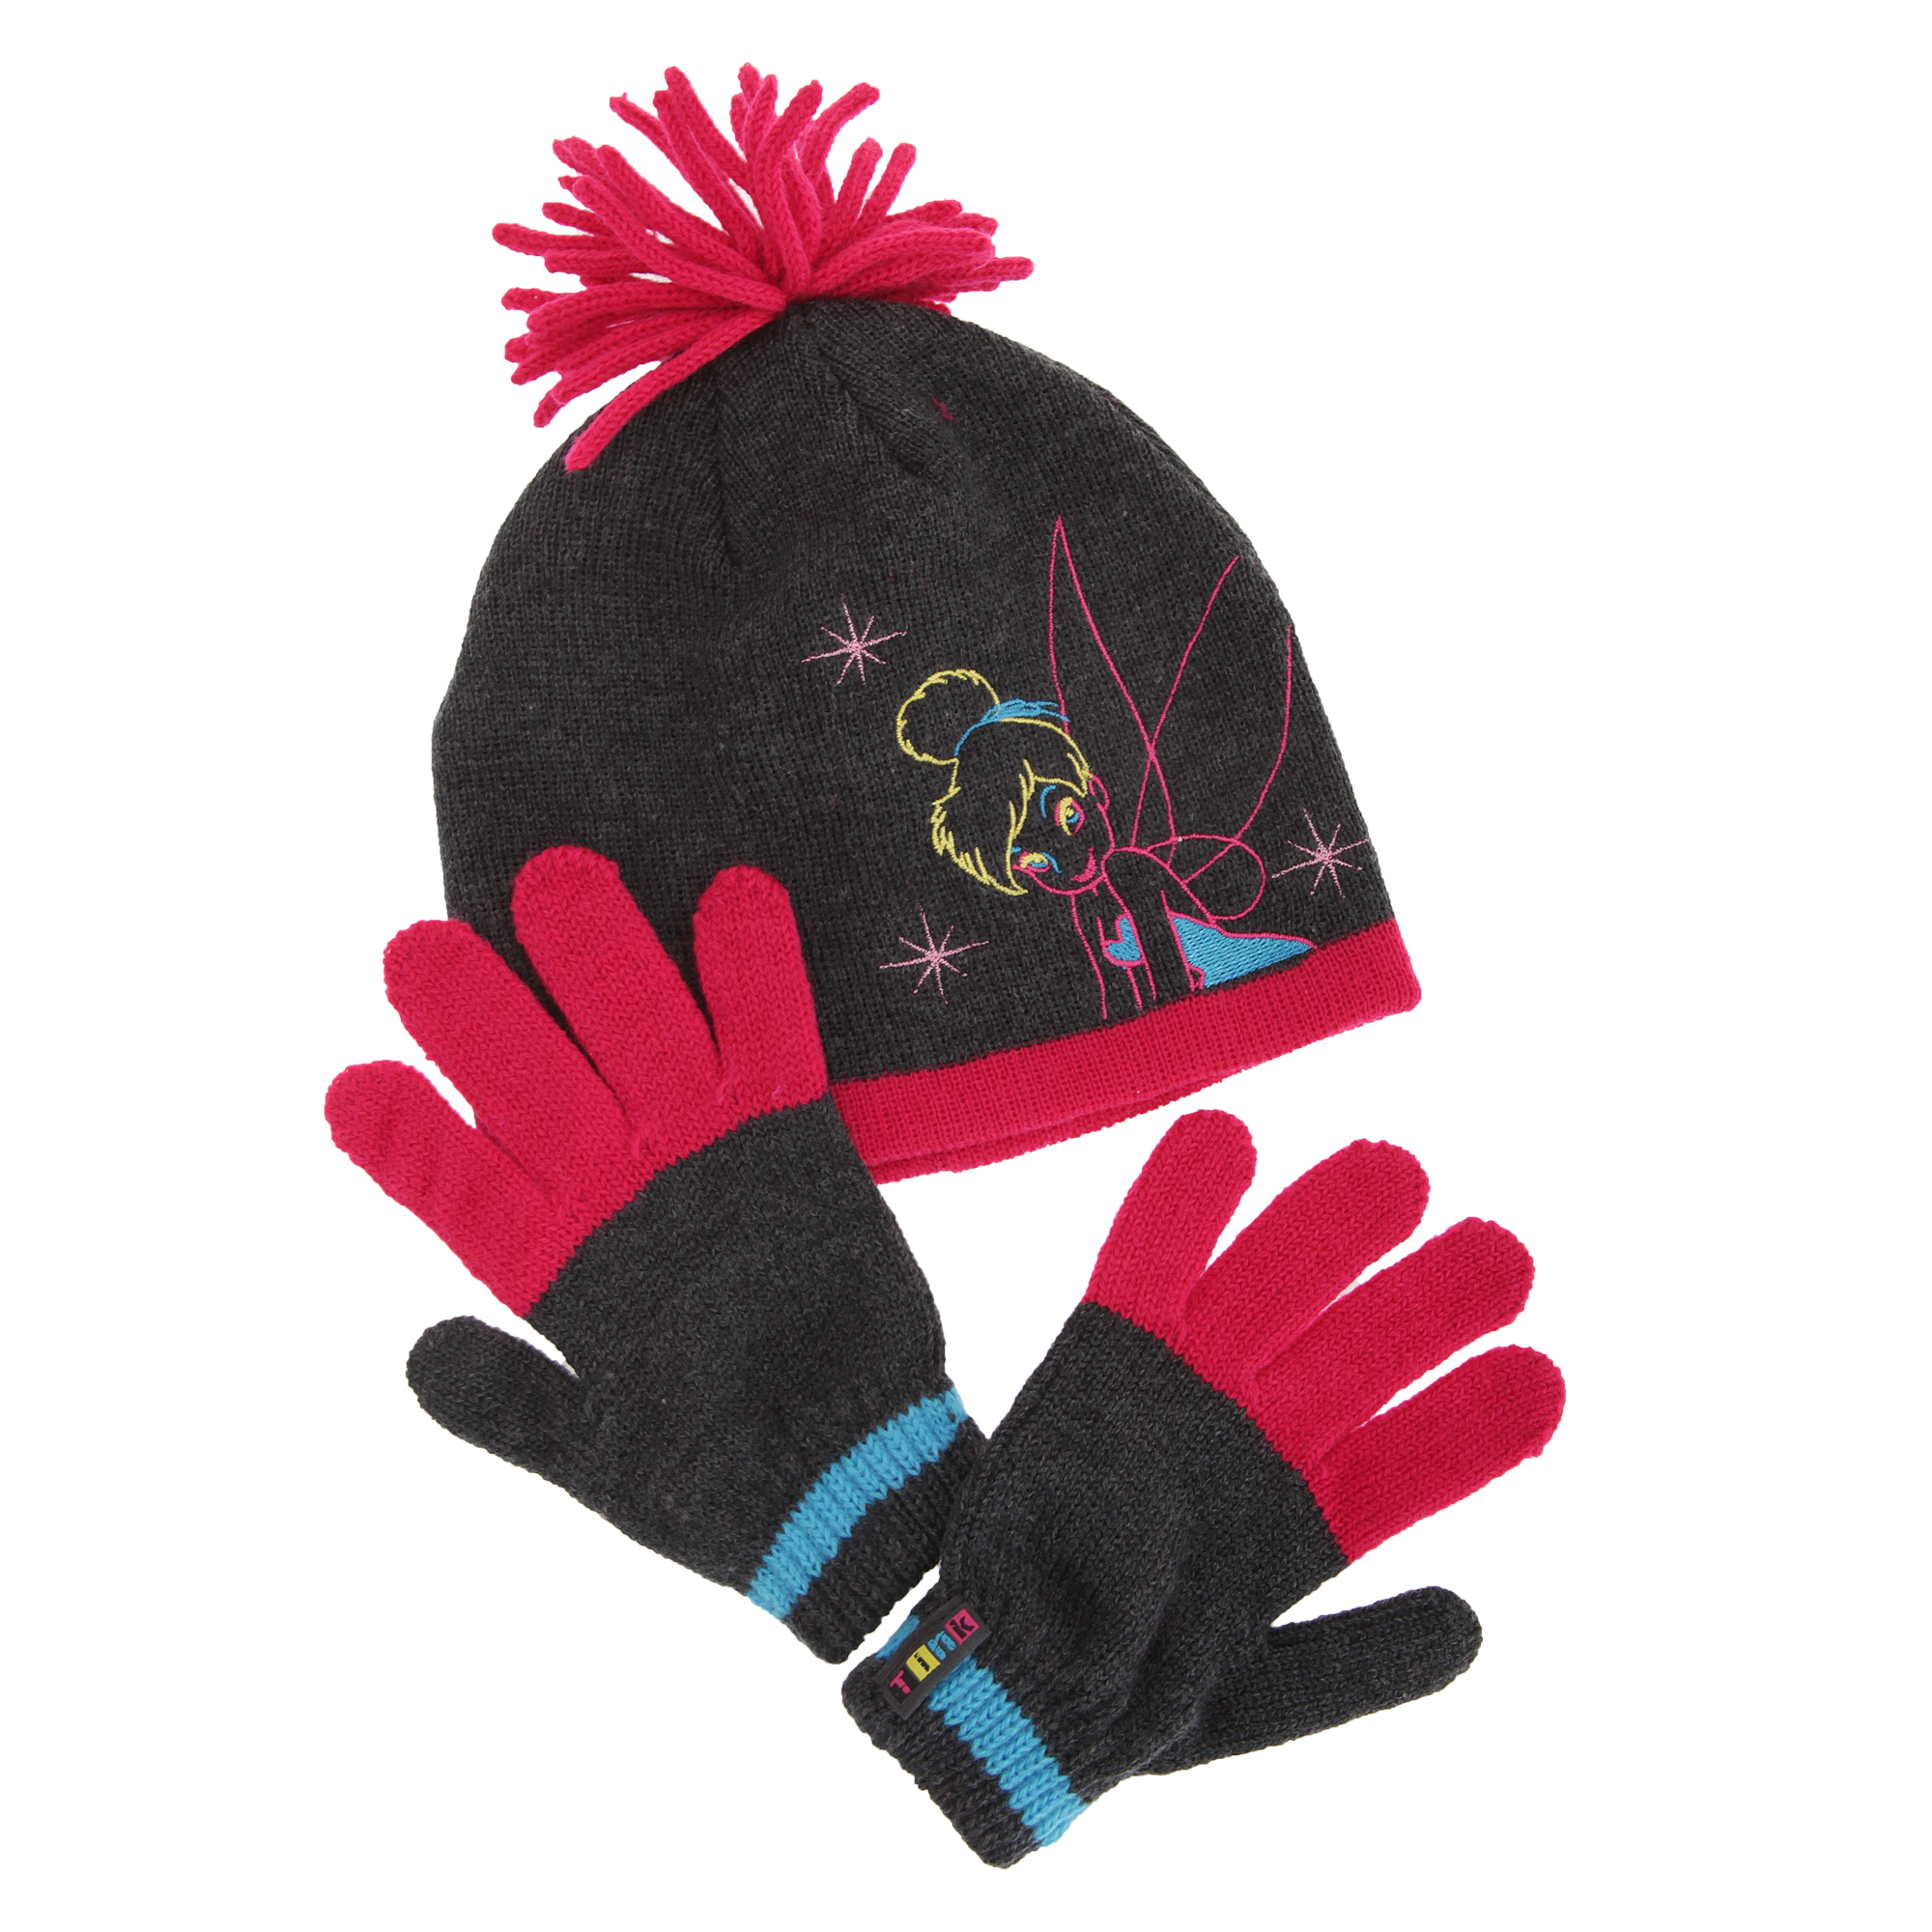 Boys Ages 4-12 Black and Red Disney Mickey Mouse Winter Hat and Glove Set